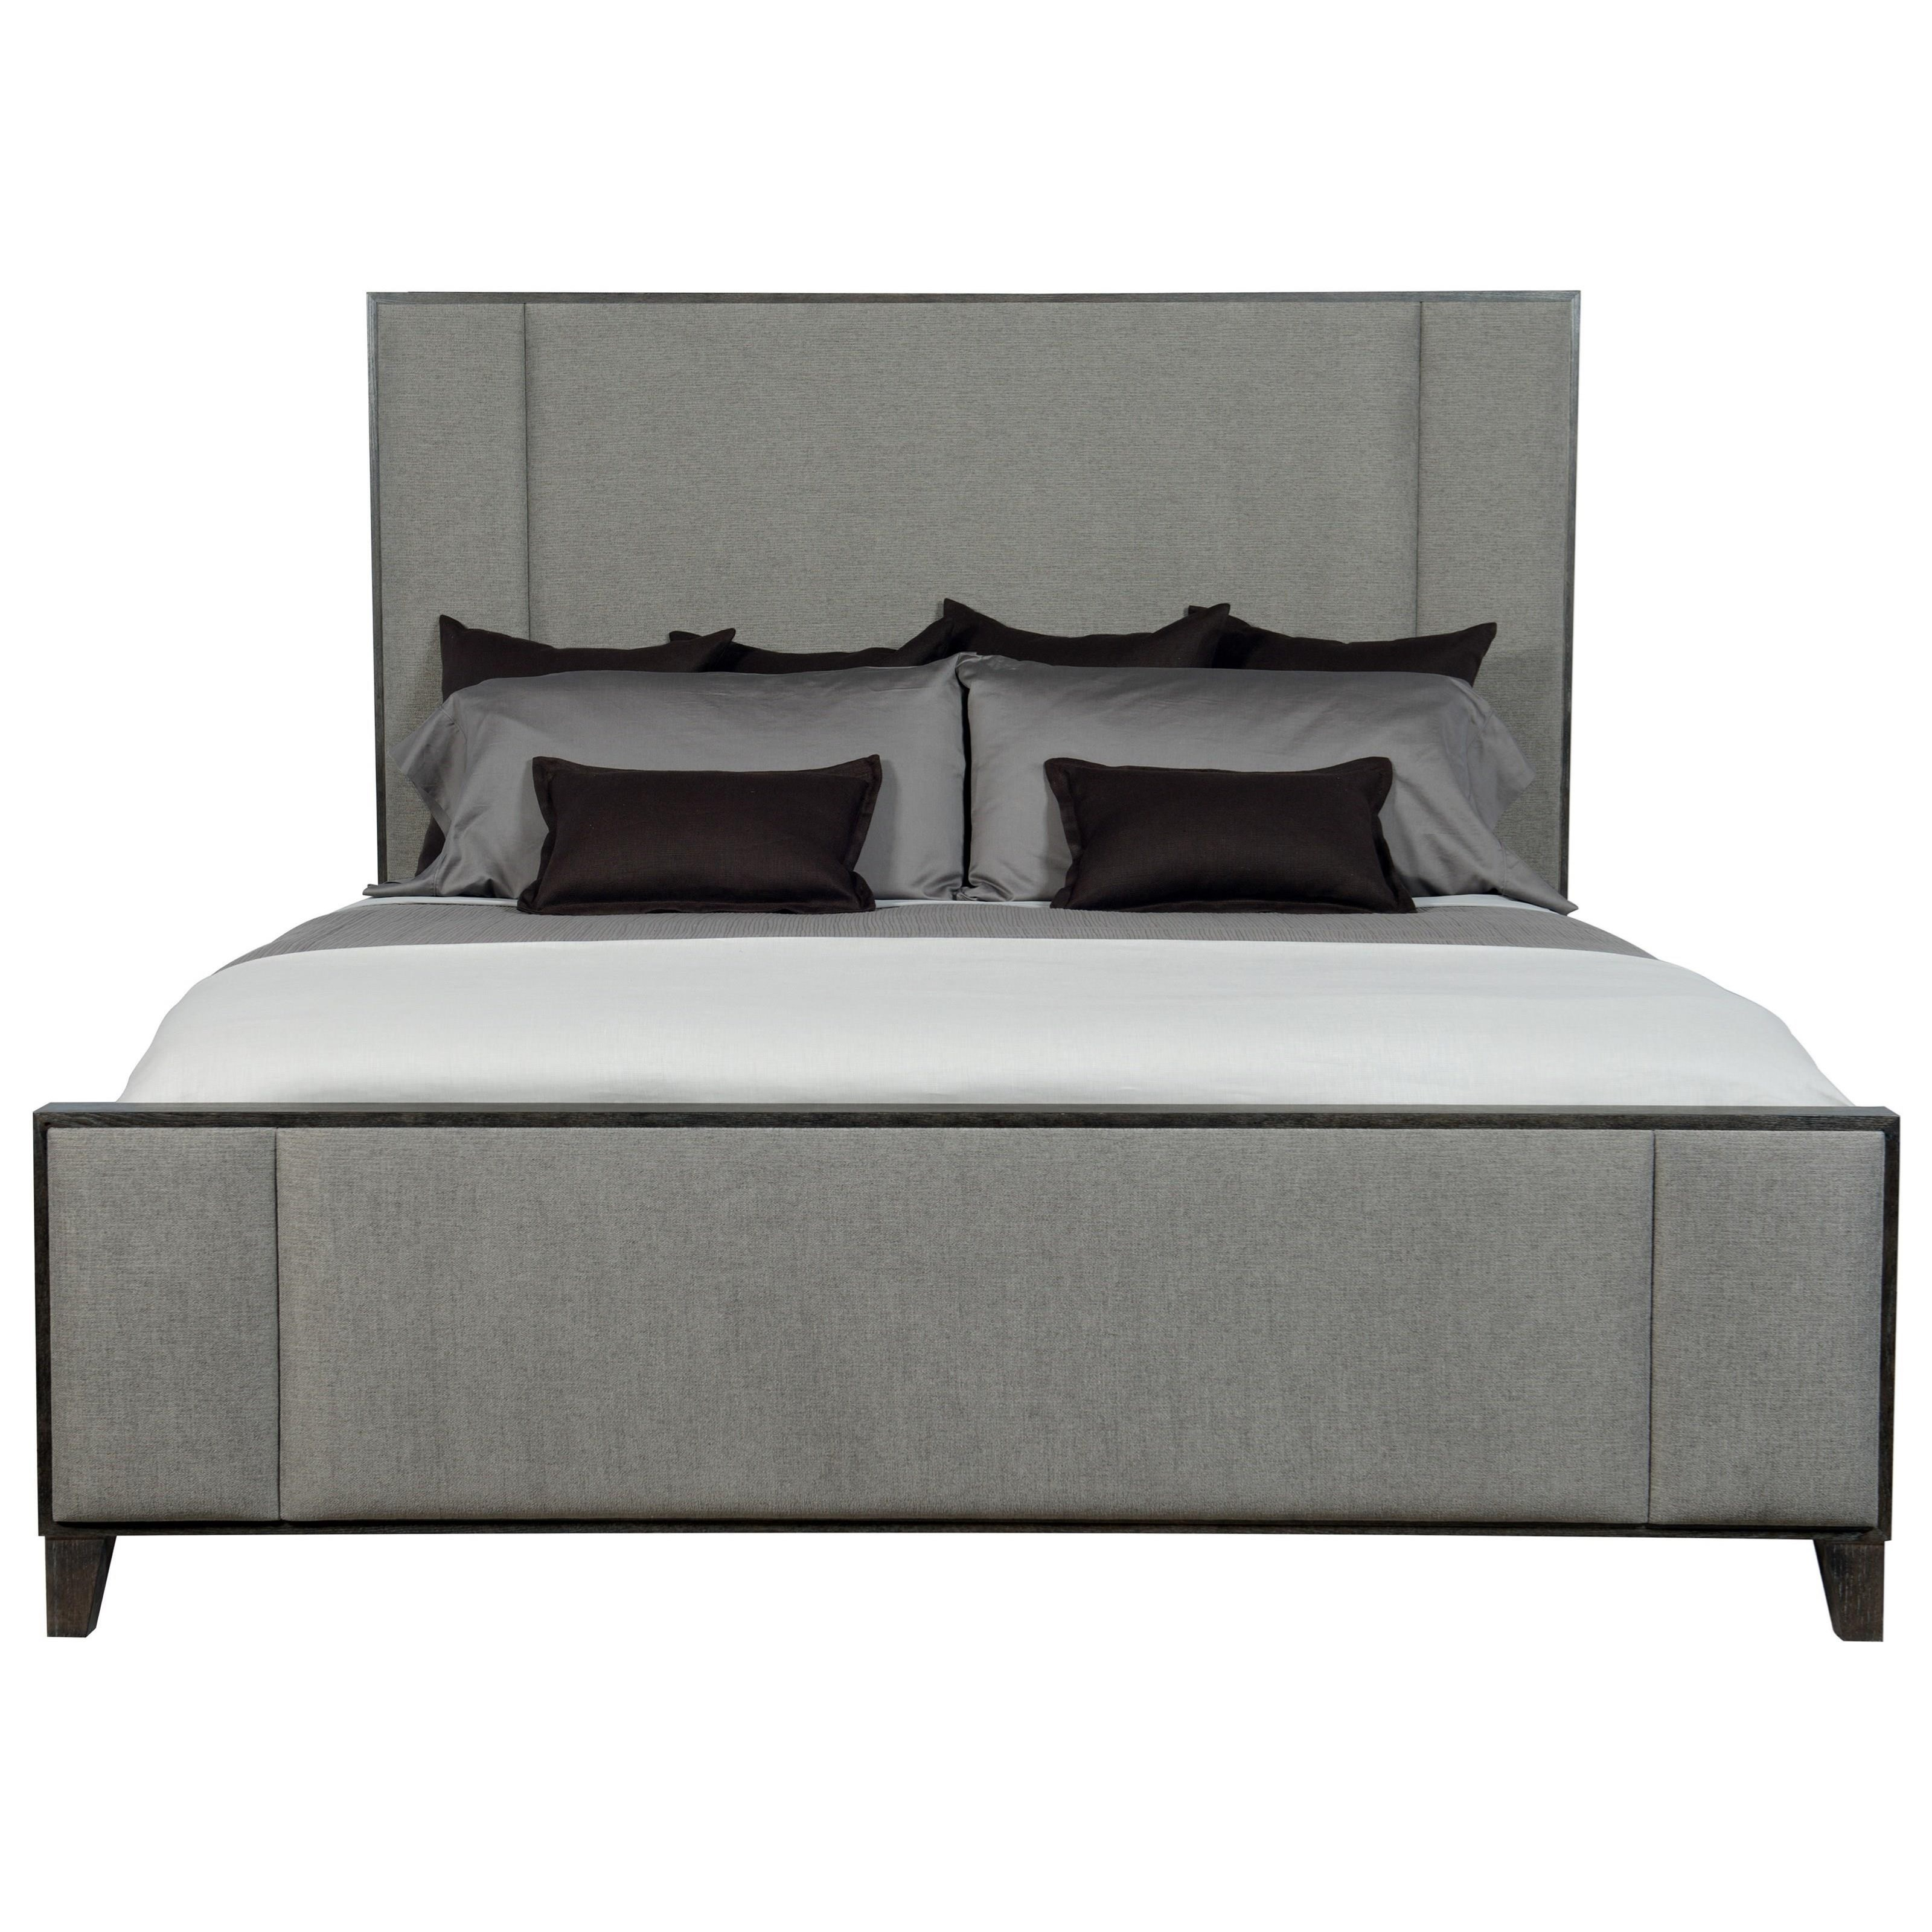 Customizable Queen Upholstered Panel Bed